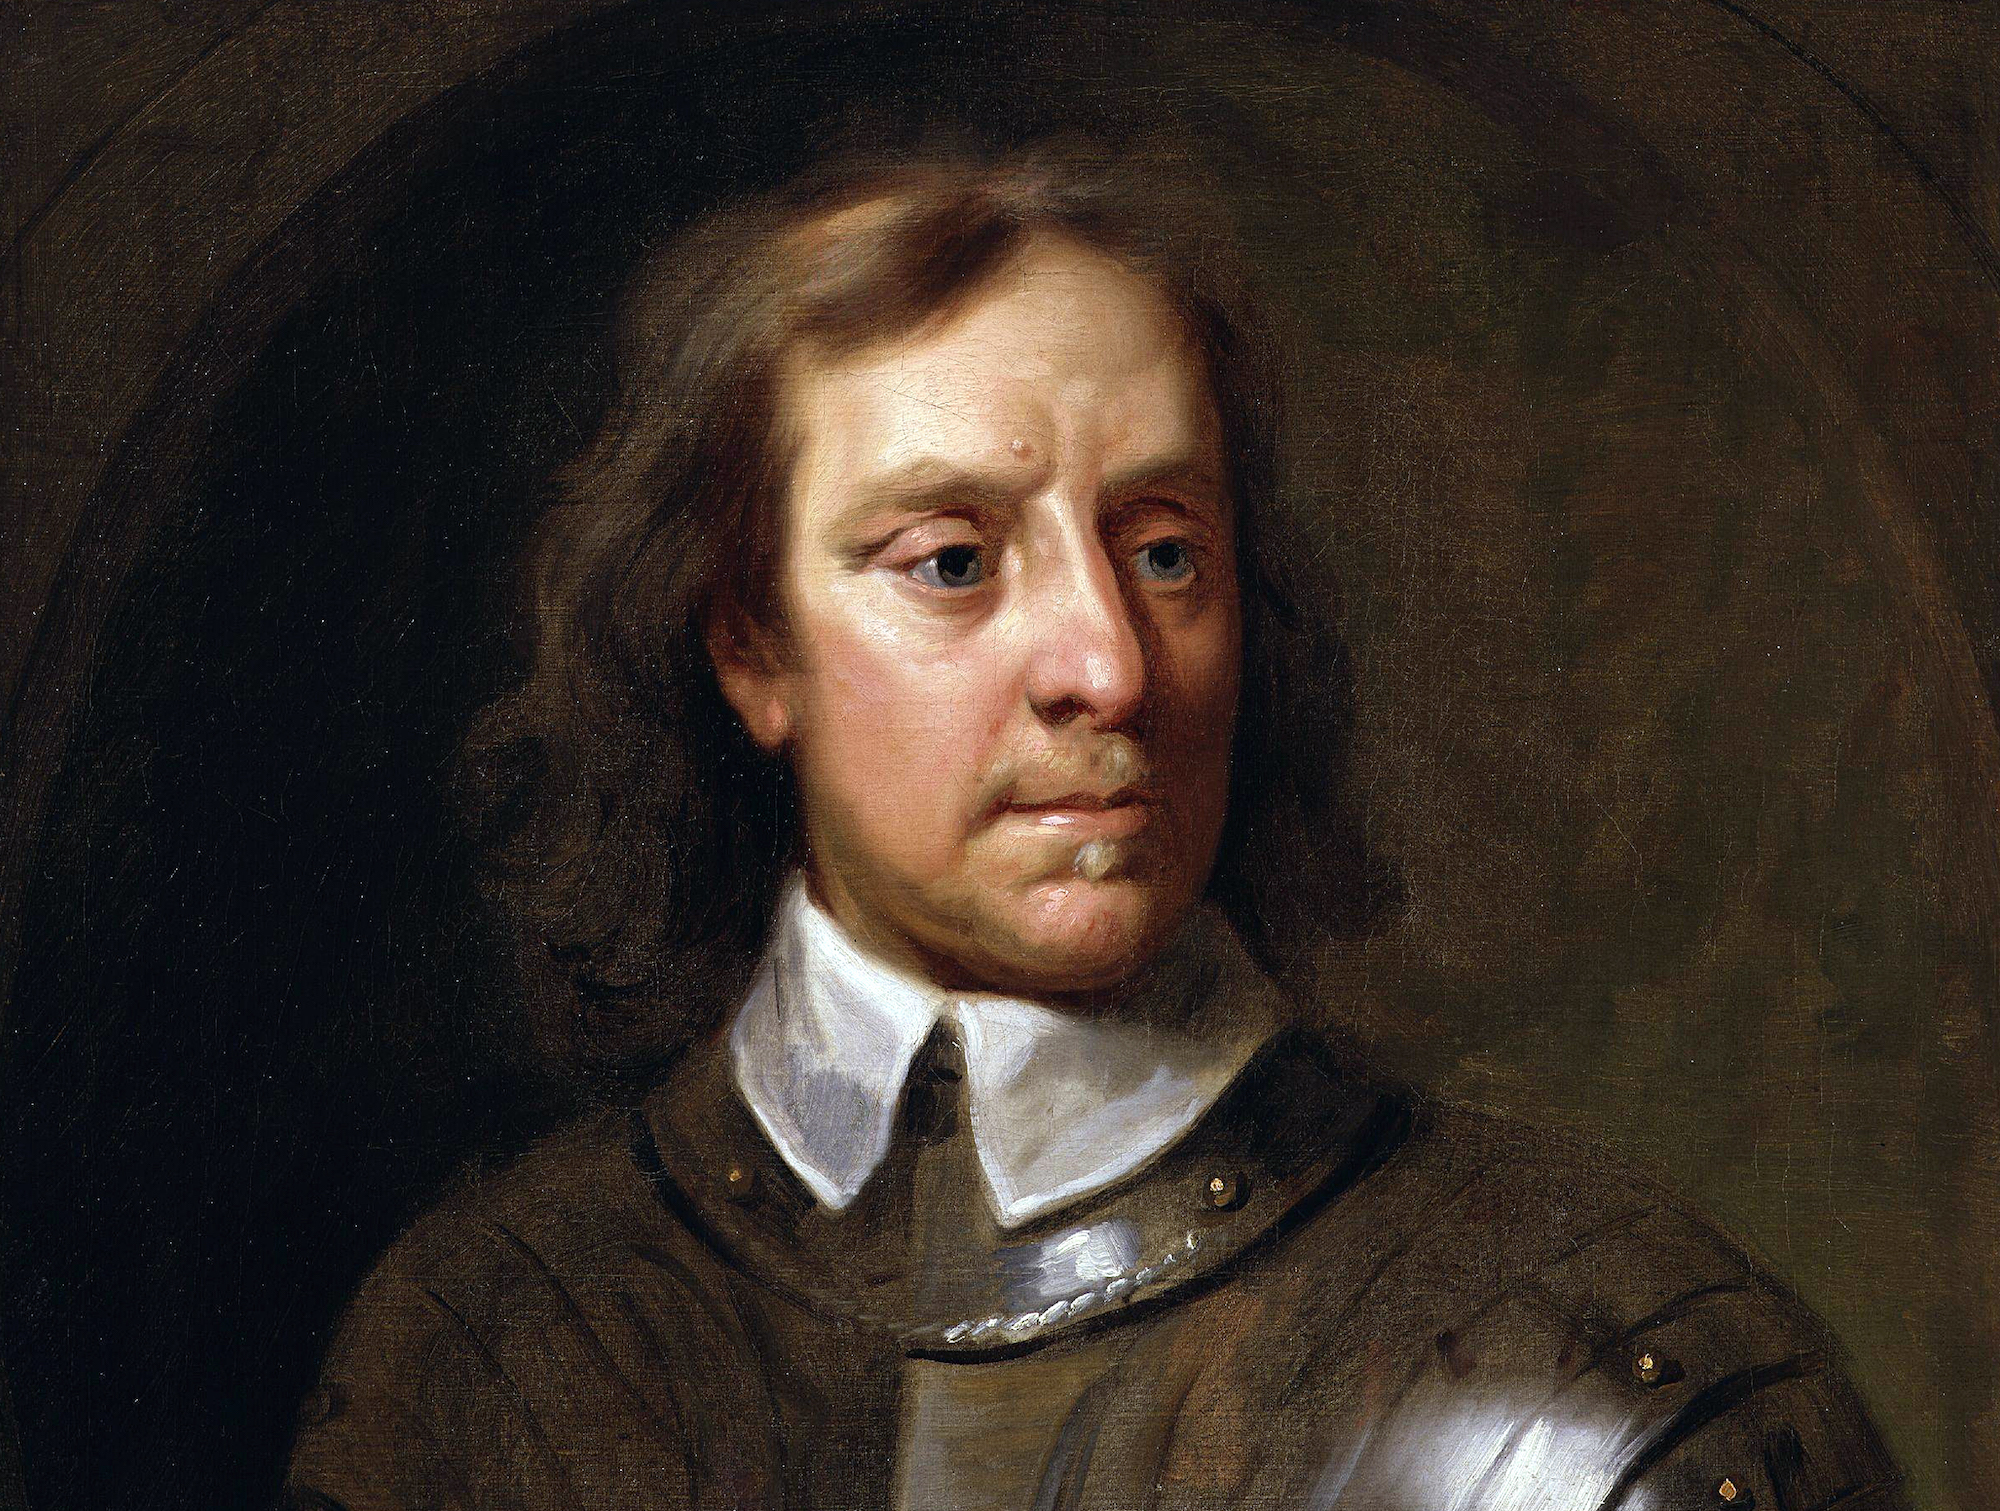 an introduction to the life of the king charles the first Indeed for the first forty years of his life cromwell remained relatively obscure and   westminster hall (above, left) where the trial of king charles i took place, and   and the introduction of the commonwealth of england, scotland and ireland.